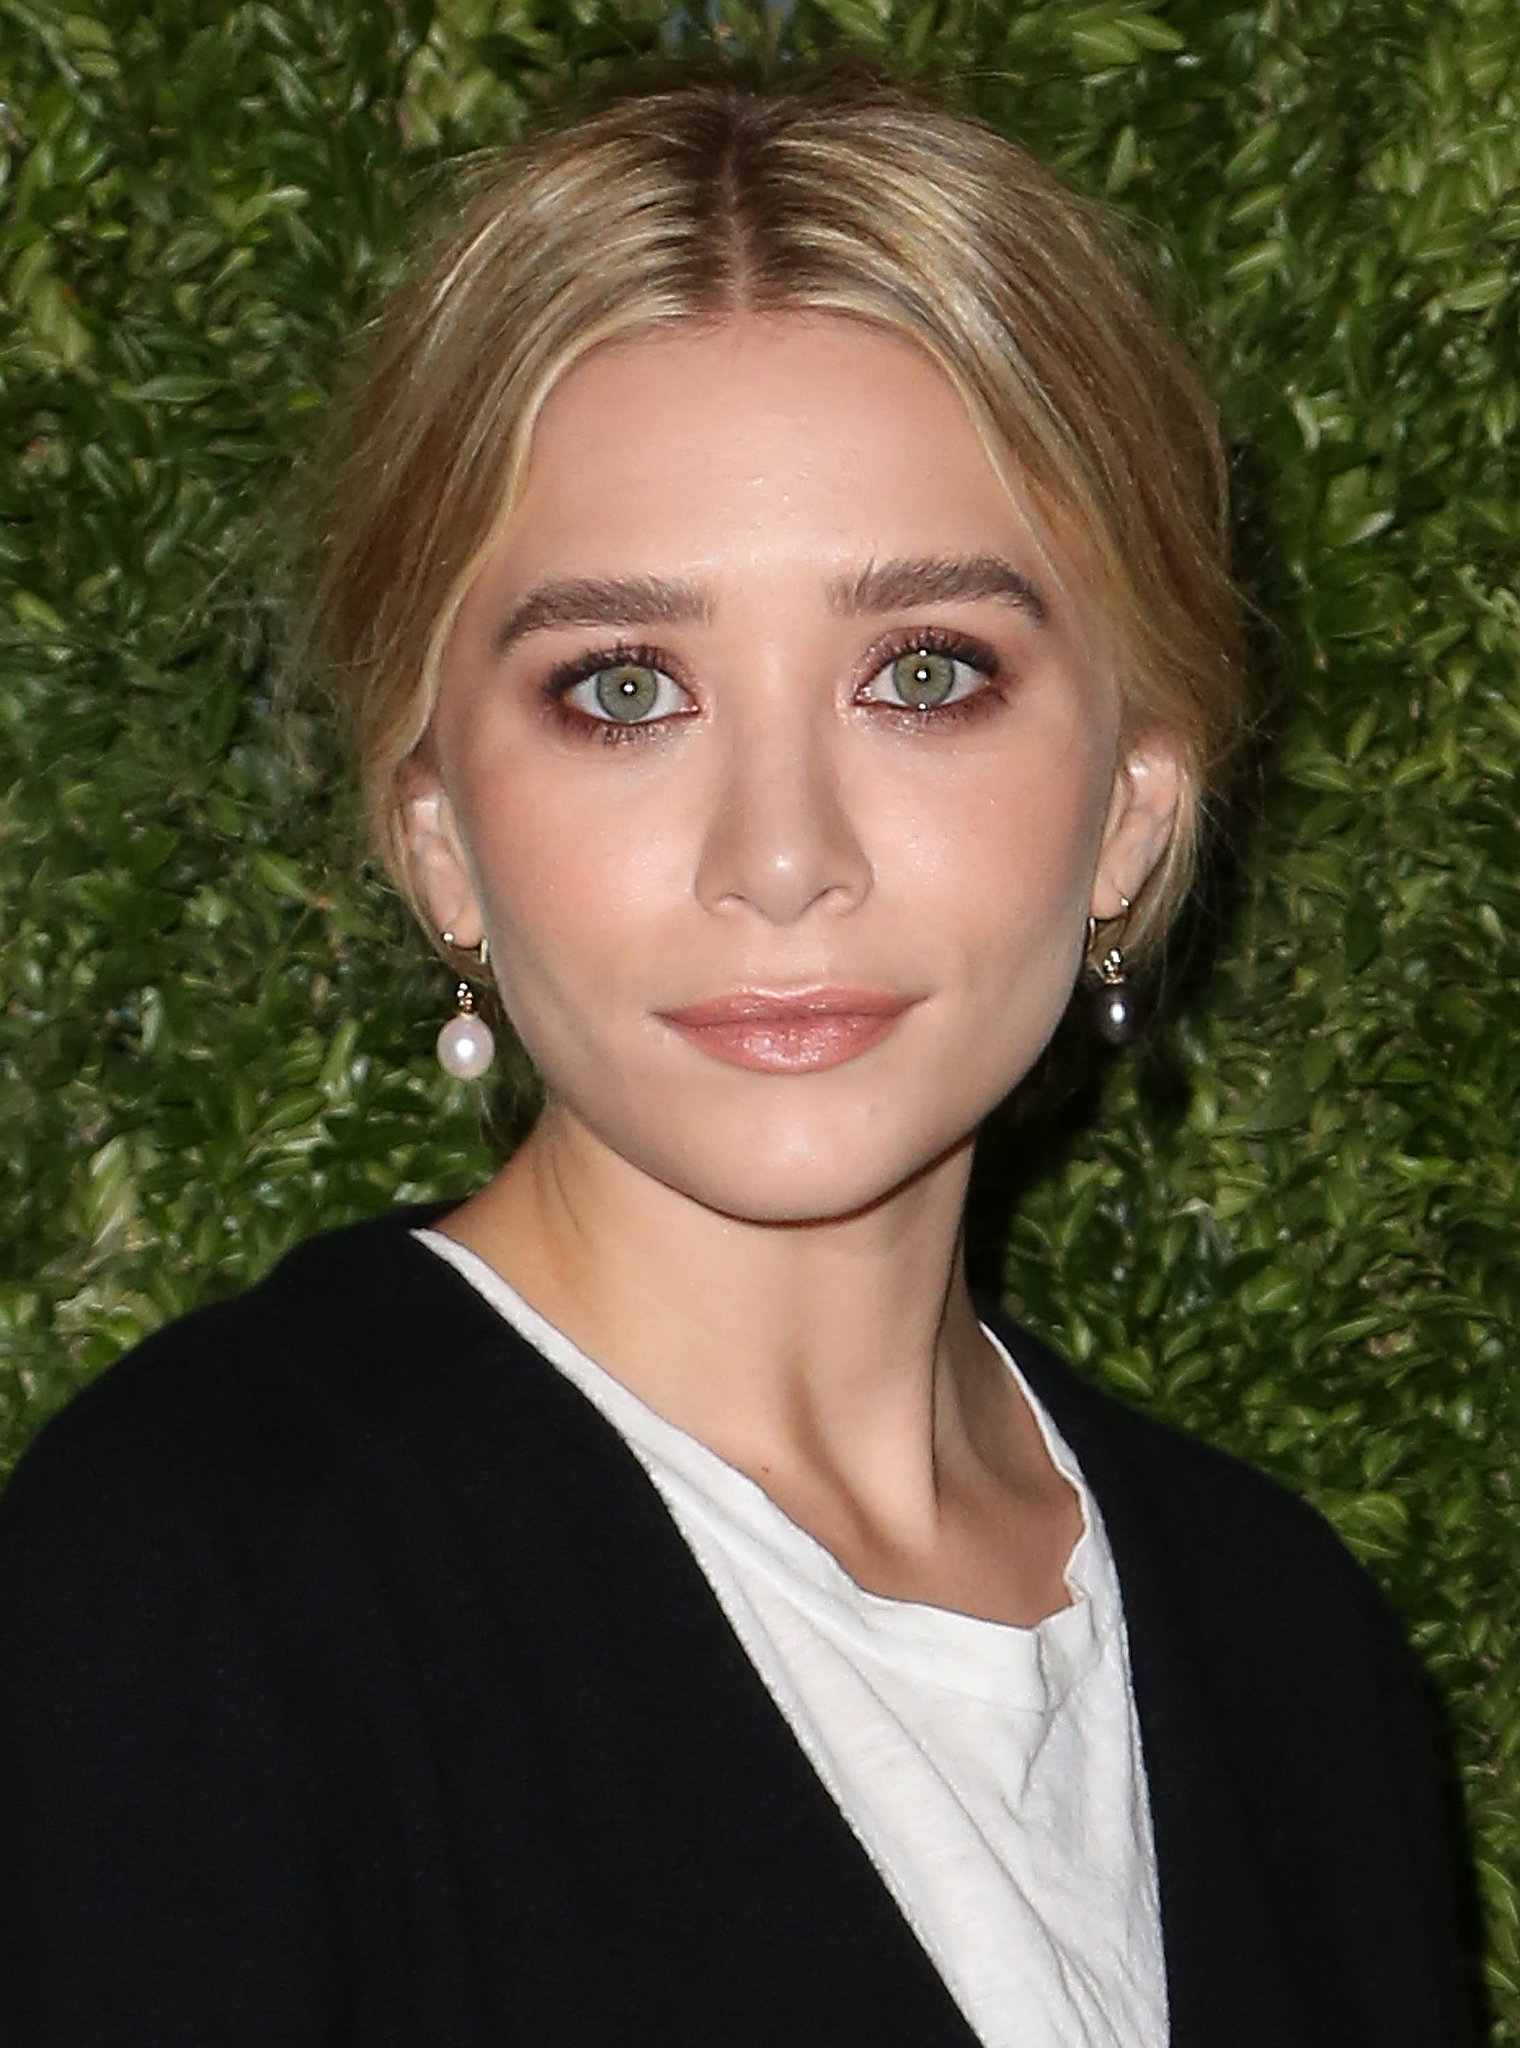 Ashely Olsen paired her signature grungy eye makeup with a low-slung chignon.